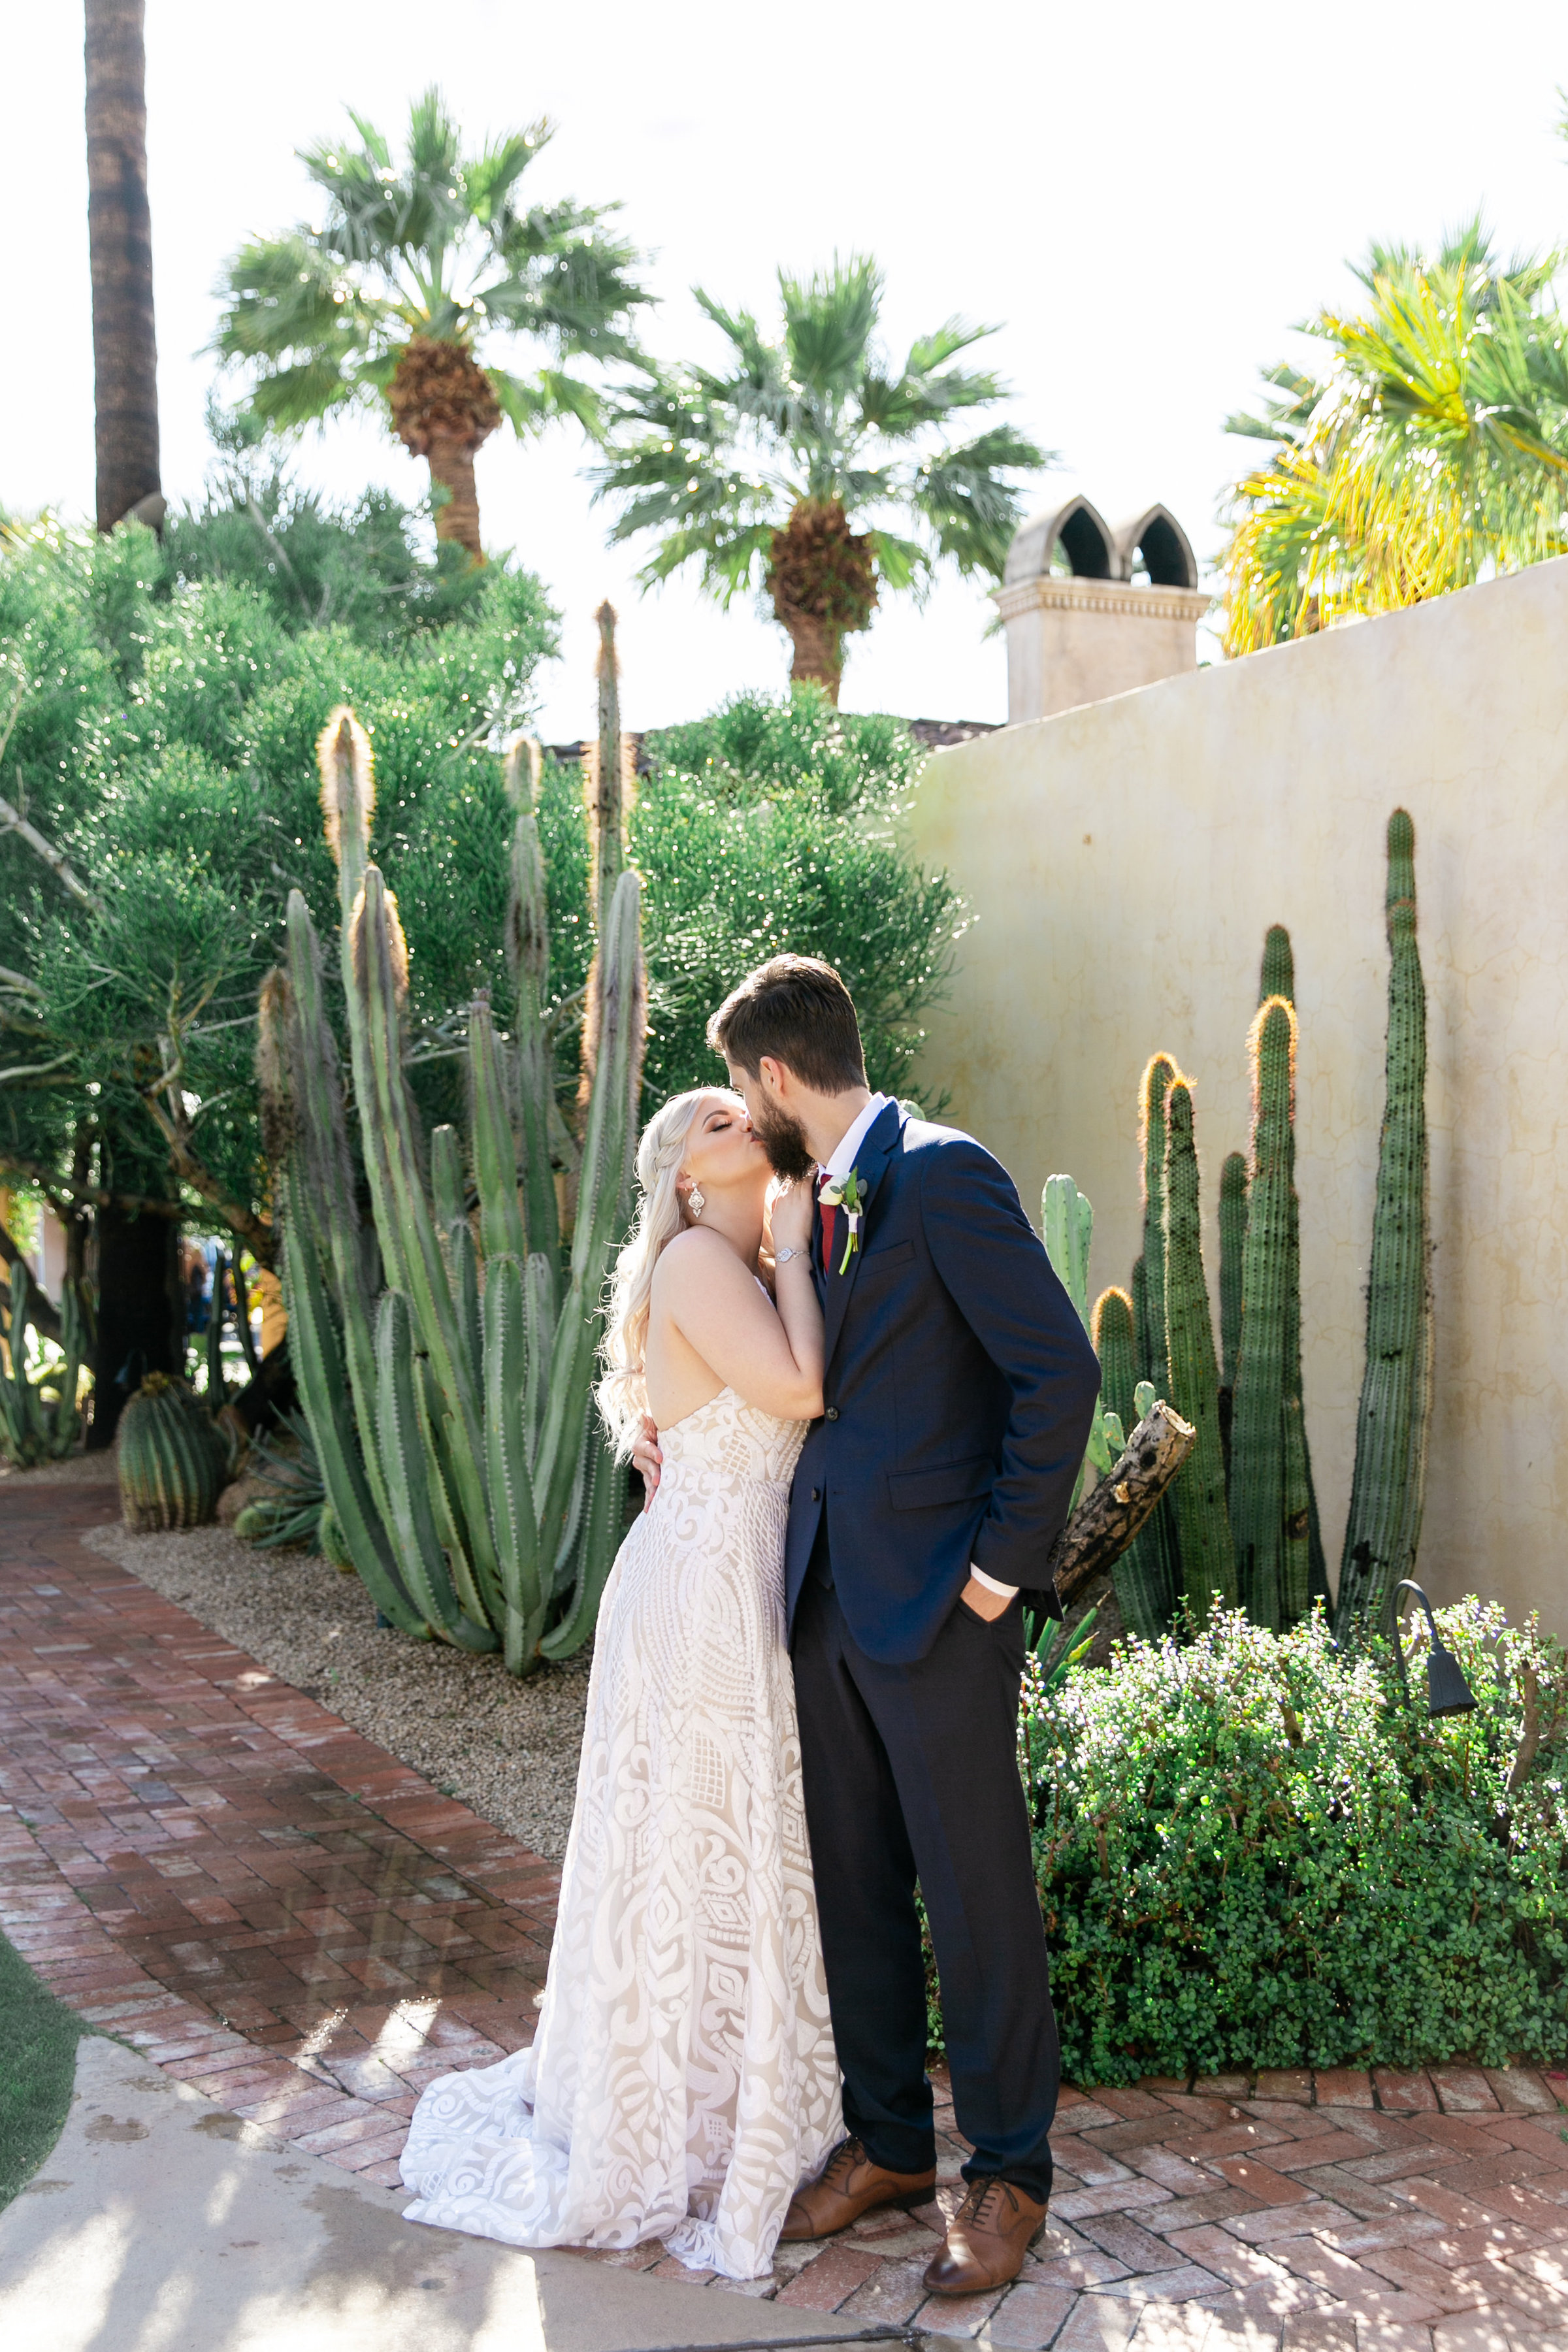 Karlie Colleen Photography - The Royal Palms Wedding - Some Like It Classic - Alex & Sam-148